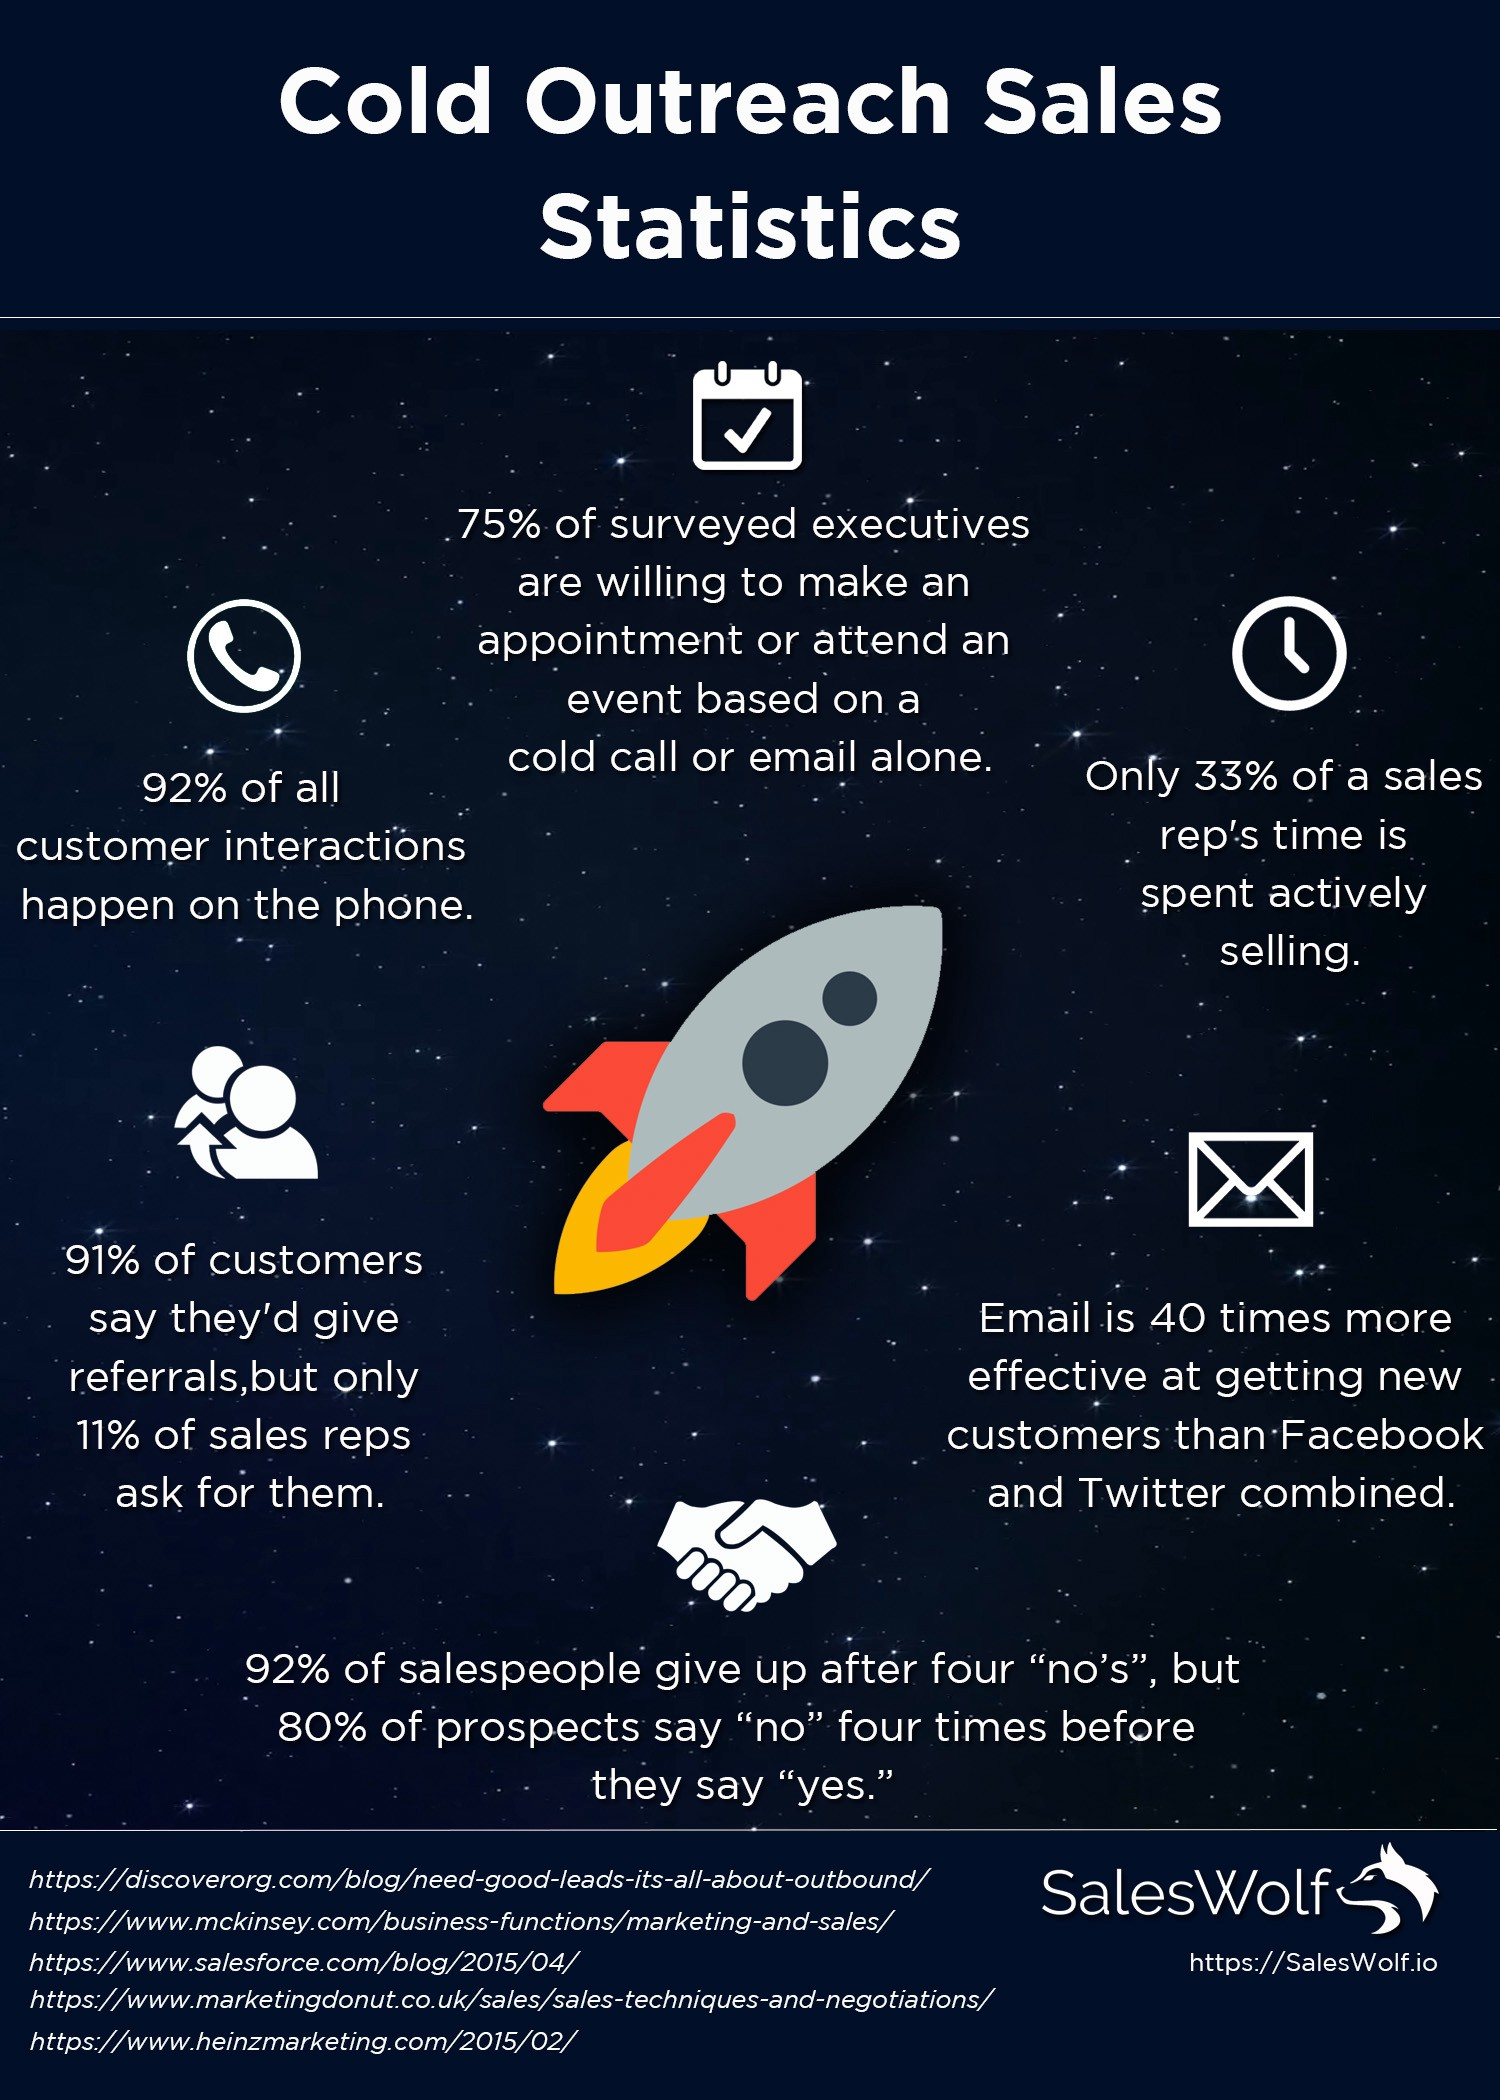 6 Cold Outreach Sales Statistics — Infographic | by Michael Phillips |  Medium